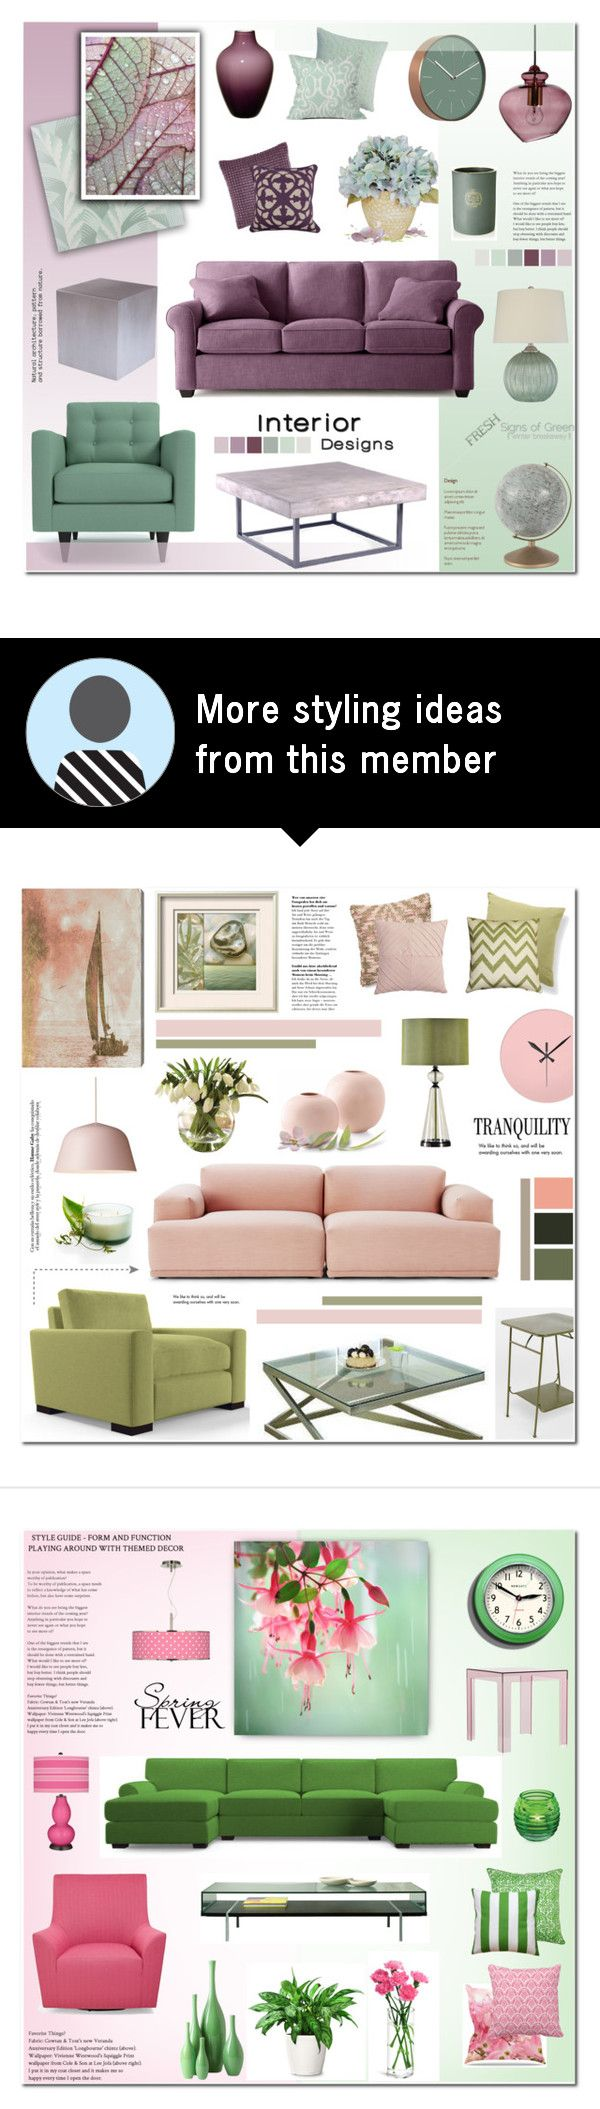 how to create a moodboard for interior design